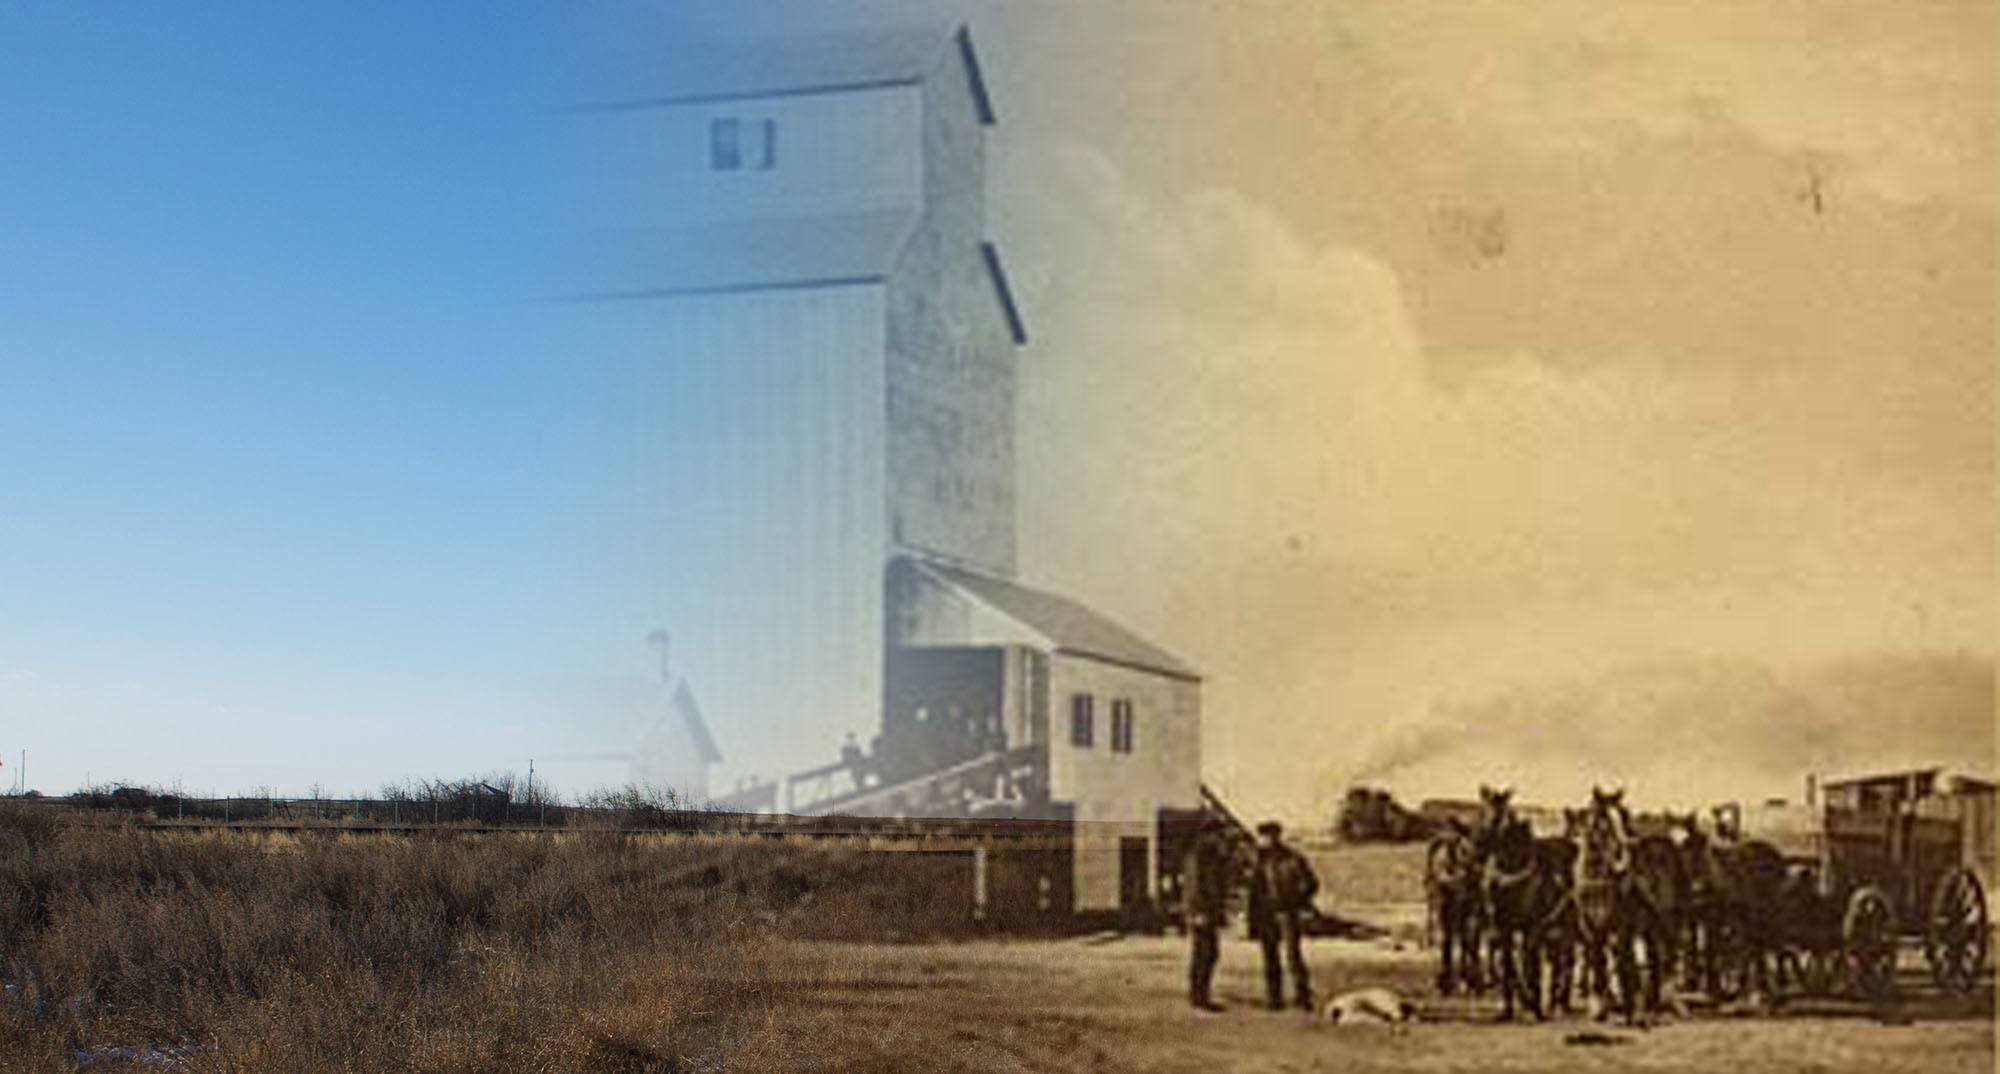 Horses delivering grain to an elevator in Gleichen in 1910 (Glenbow Museum and Archives/On This Spot)